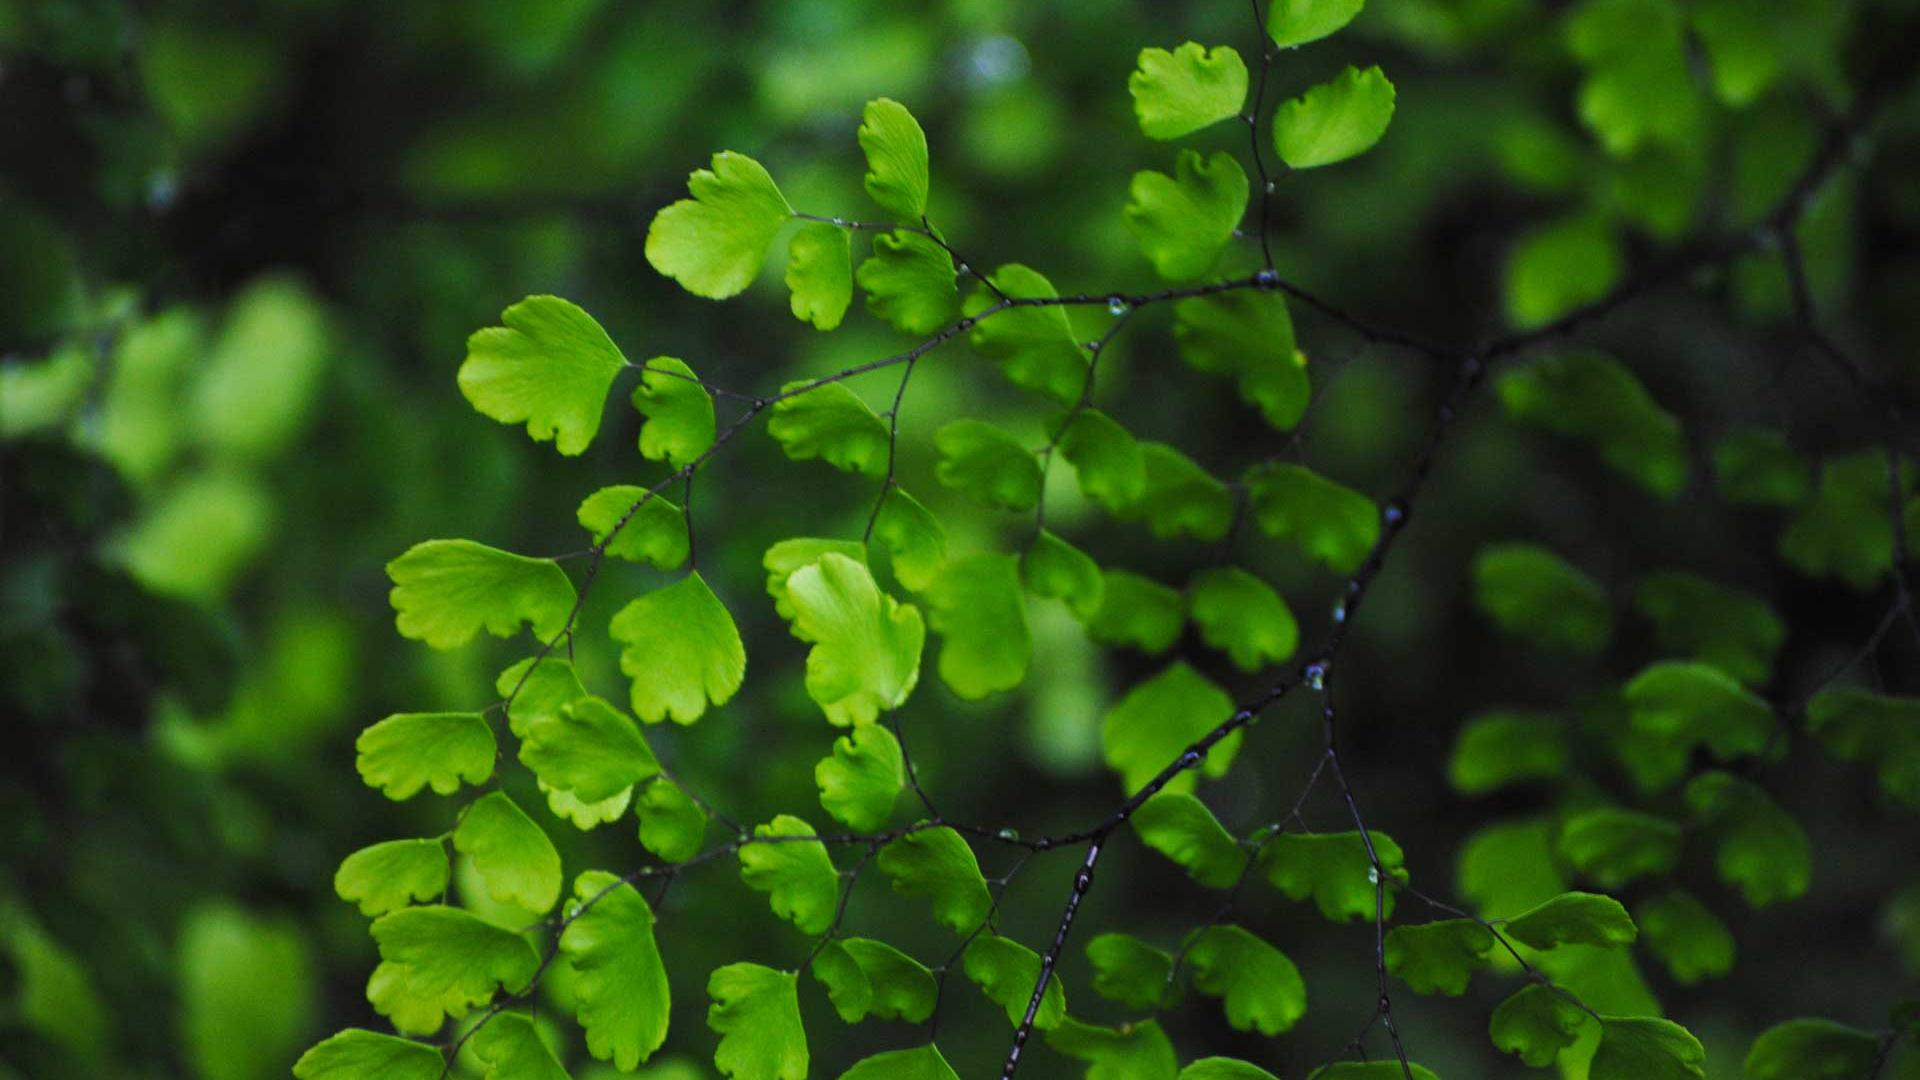 3d Call Of Duty 2 Wallpaper High Definition Green Leaves Wallpapers